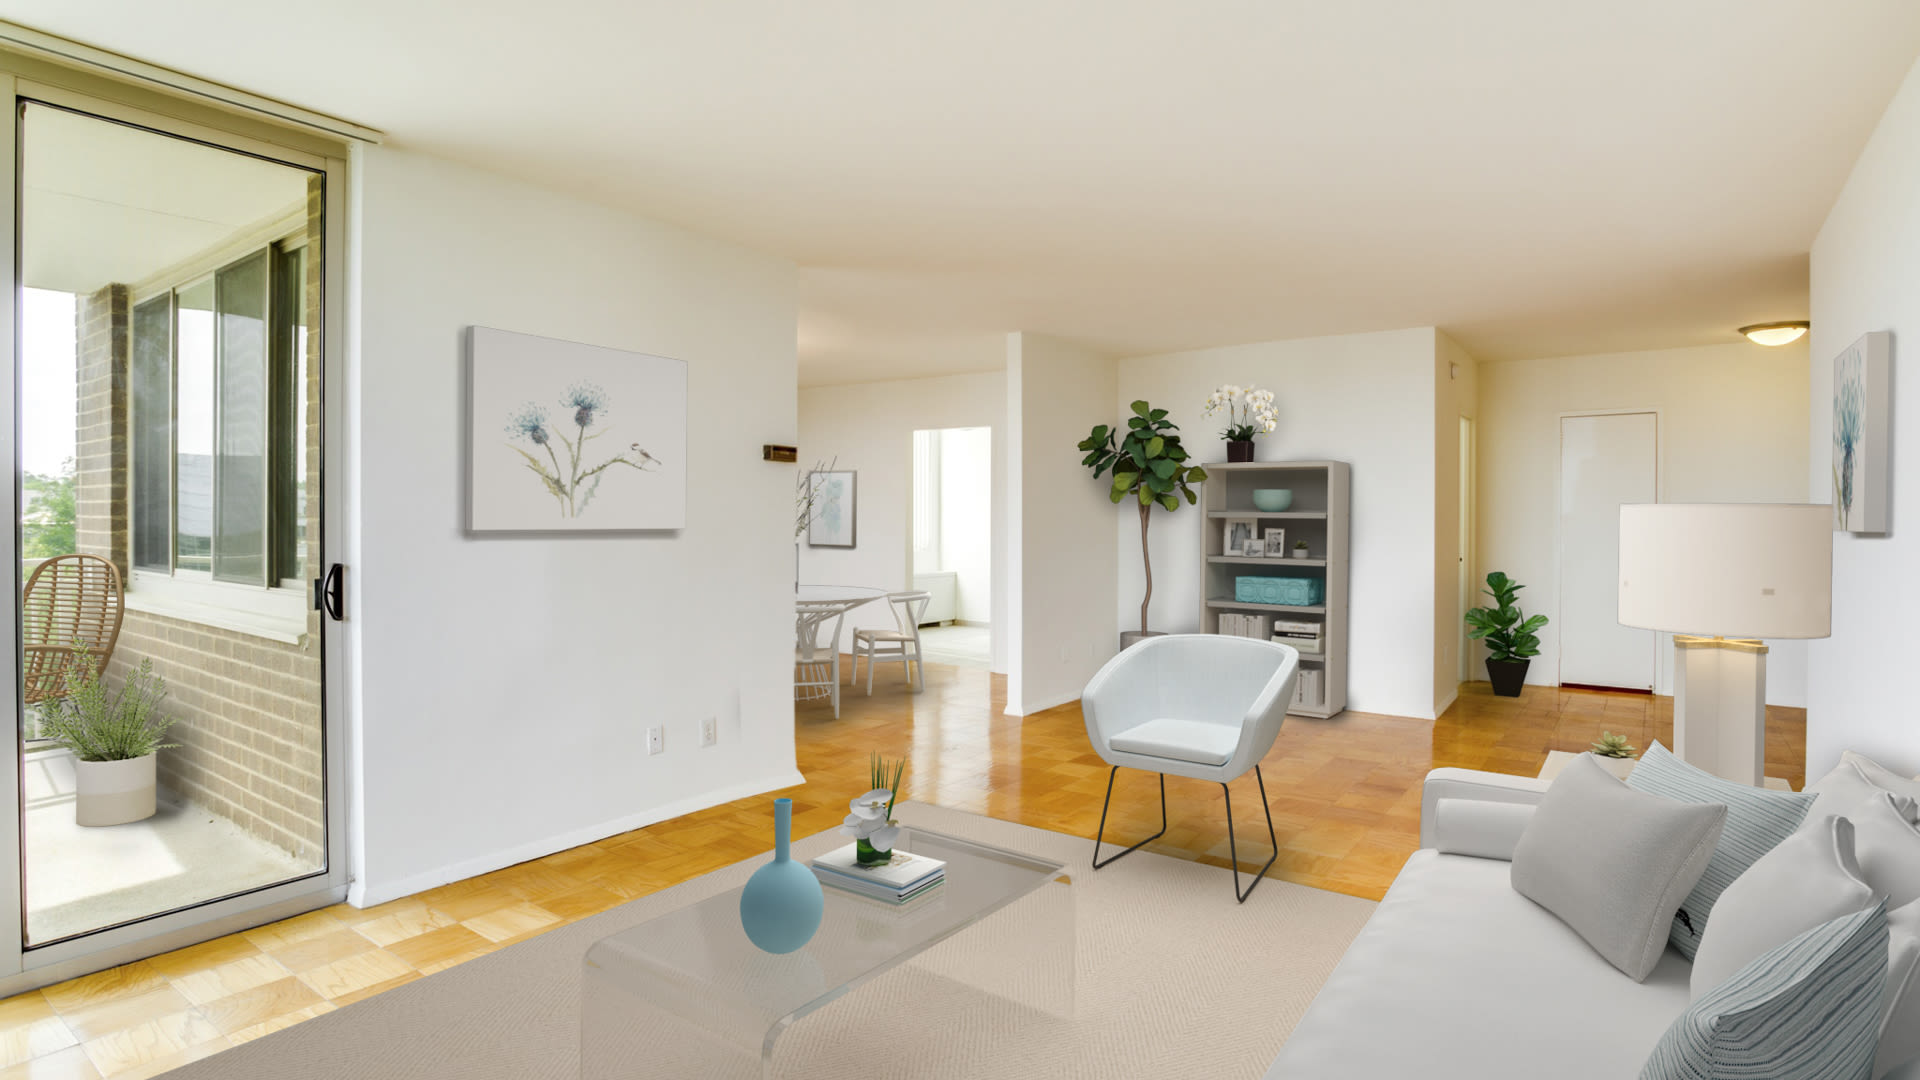 3003 Van Ness Apartments - Living and Dining Room with Parquet Flooring and Private Balcony